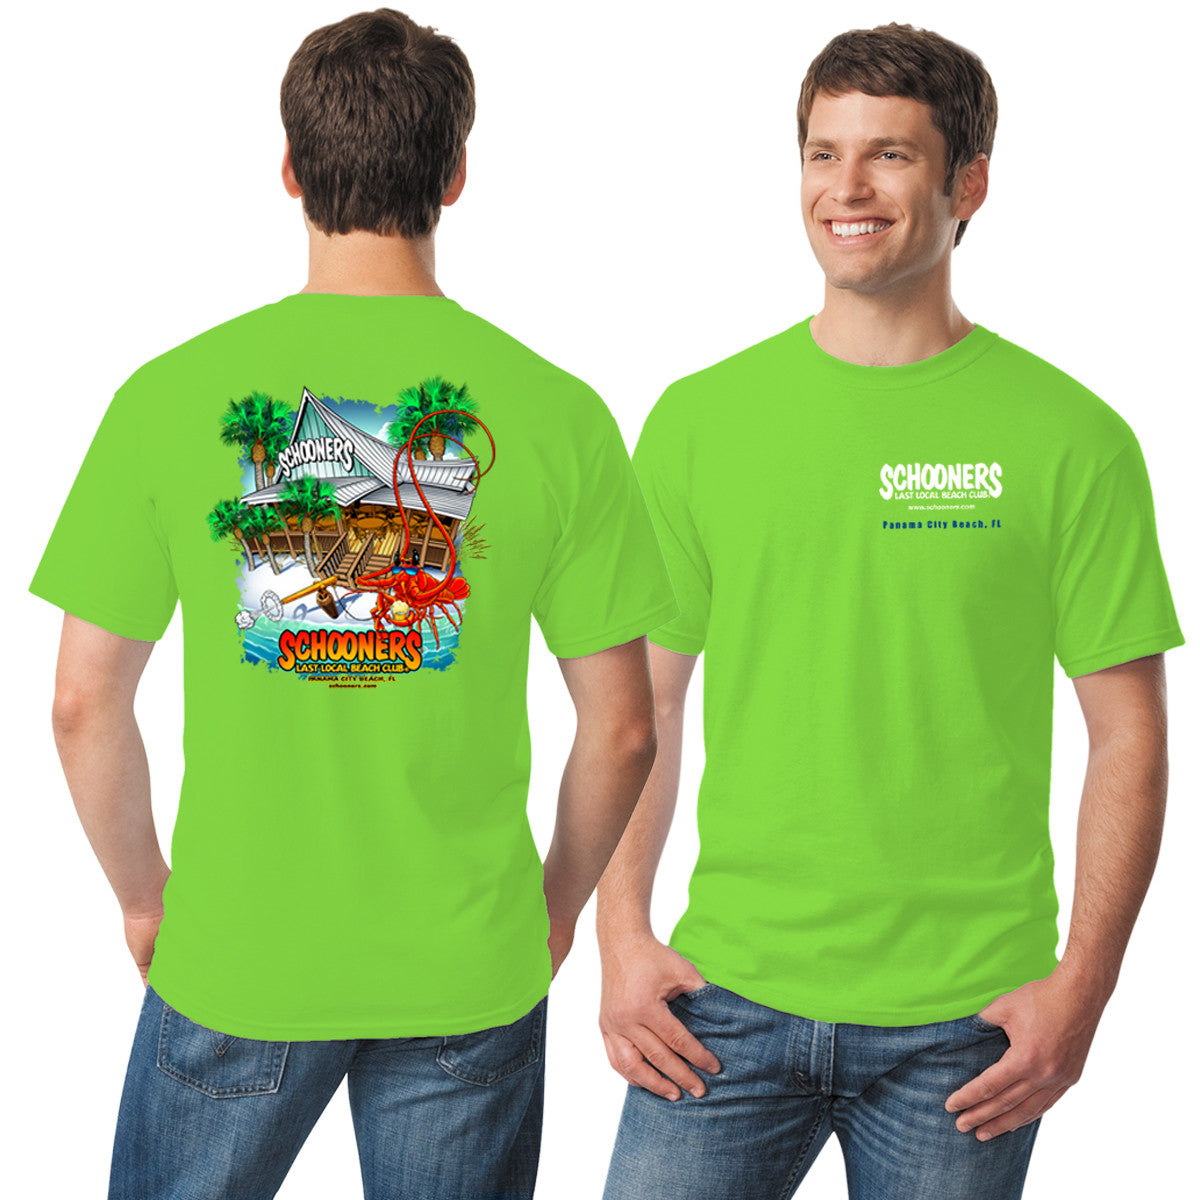 Building Design T-Shirt